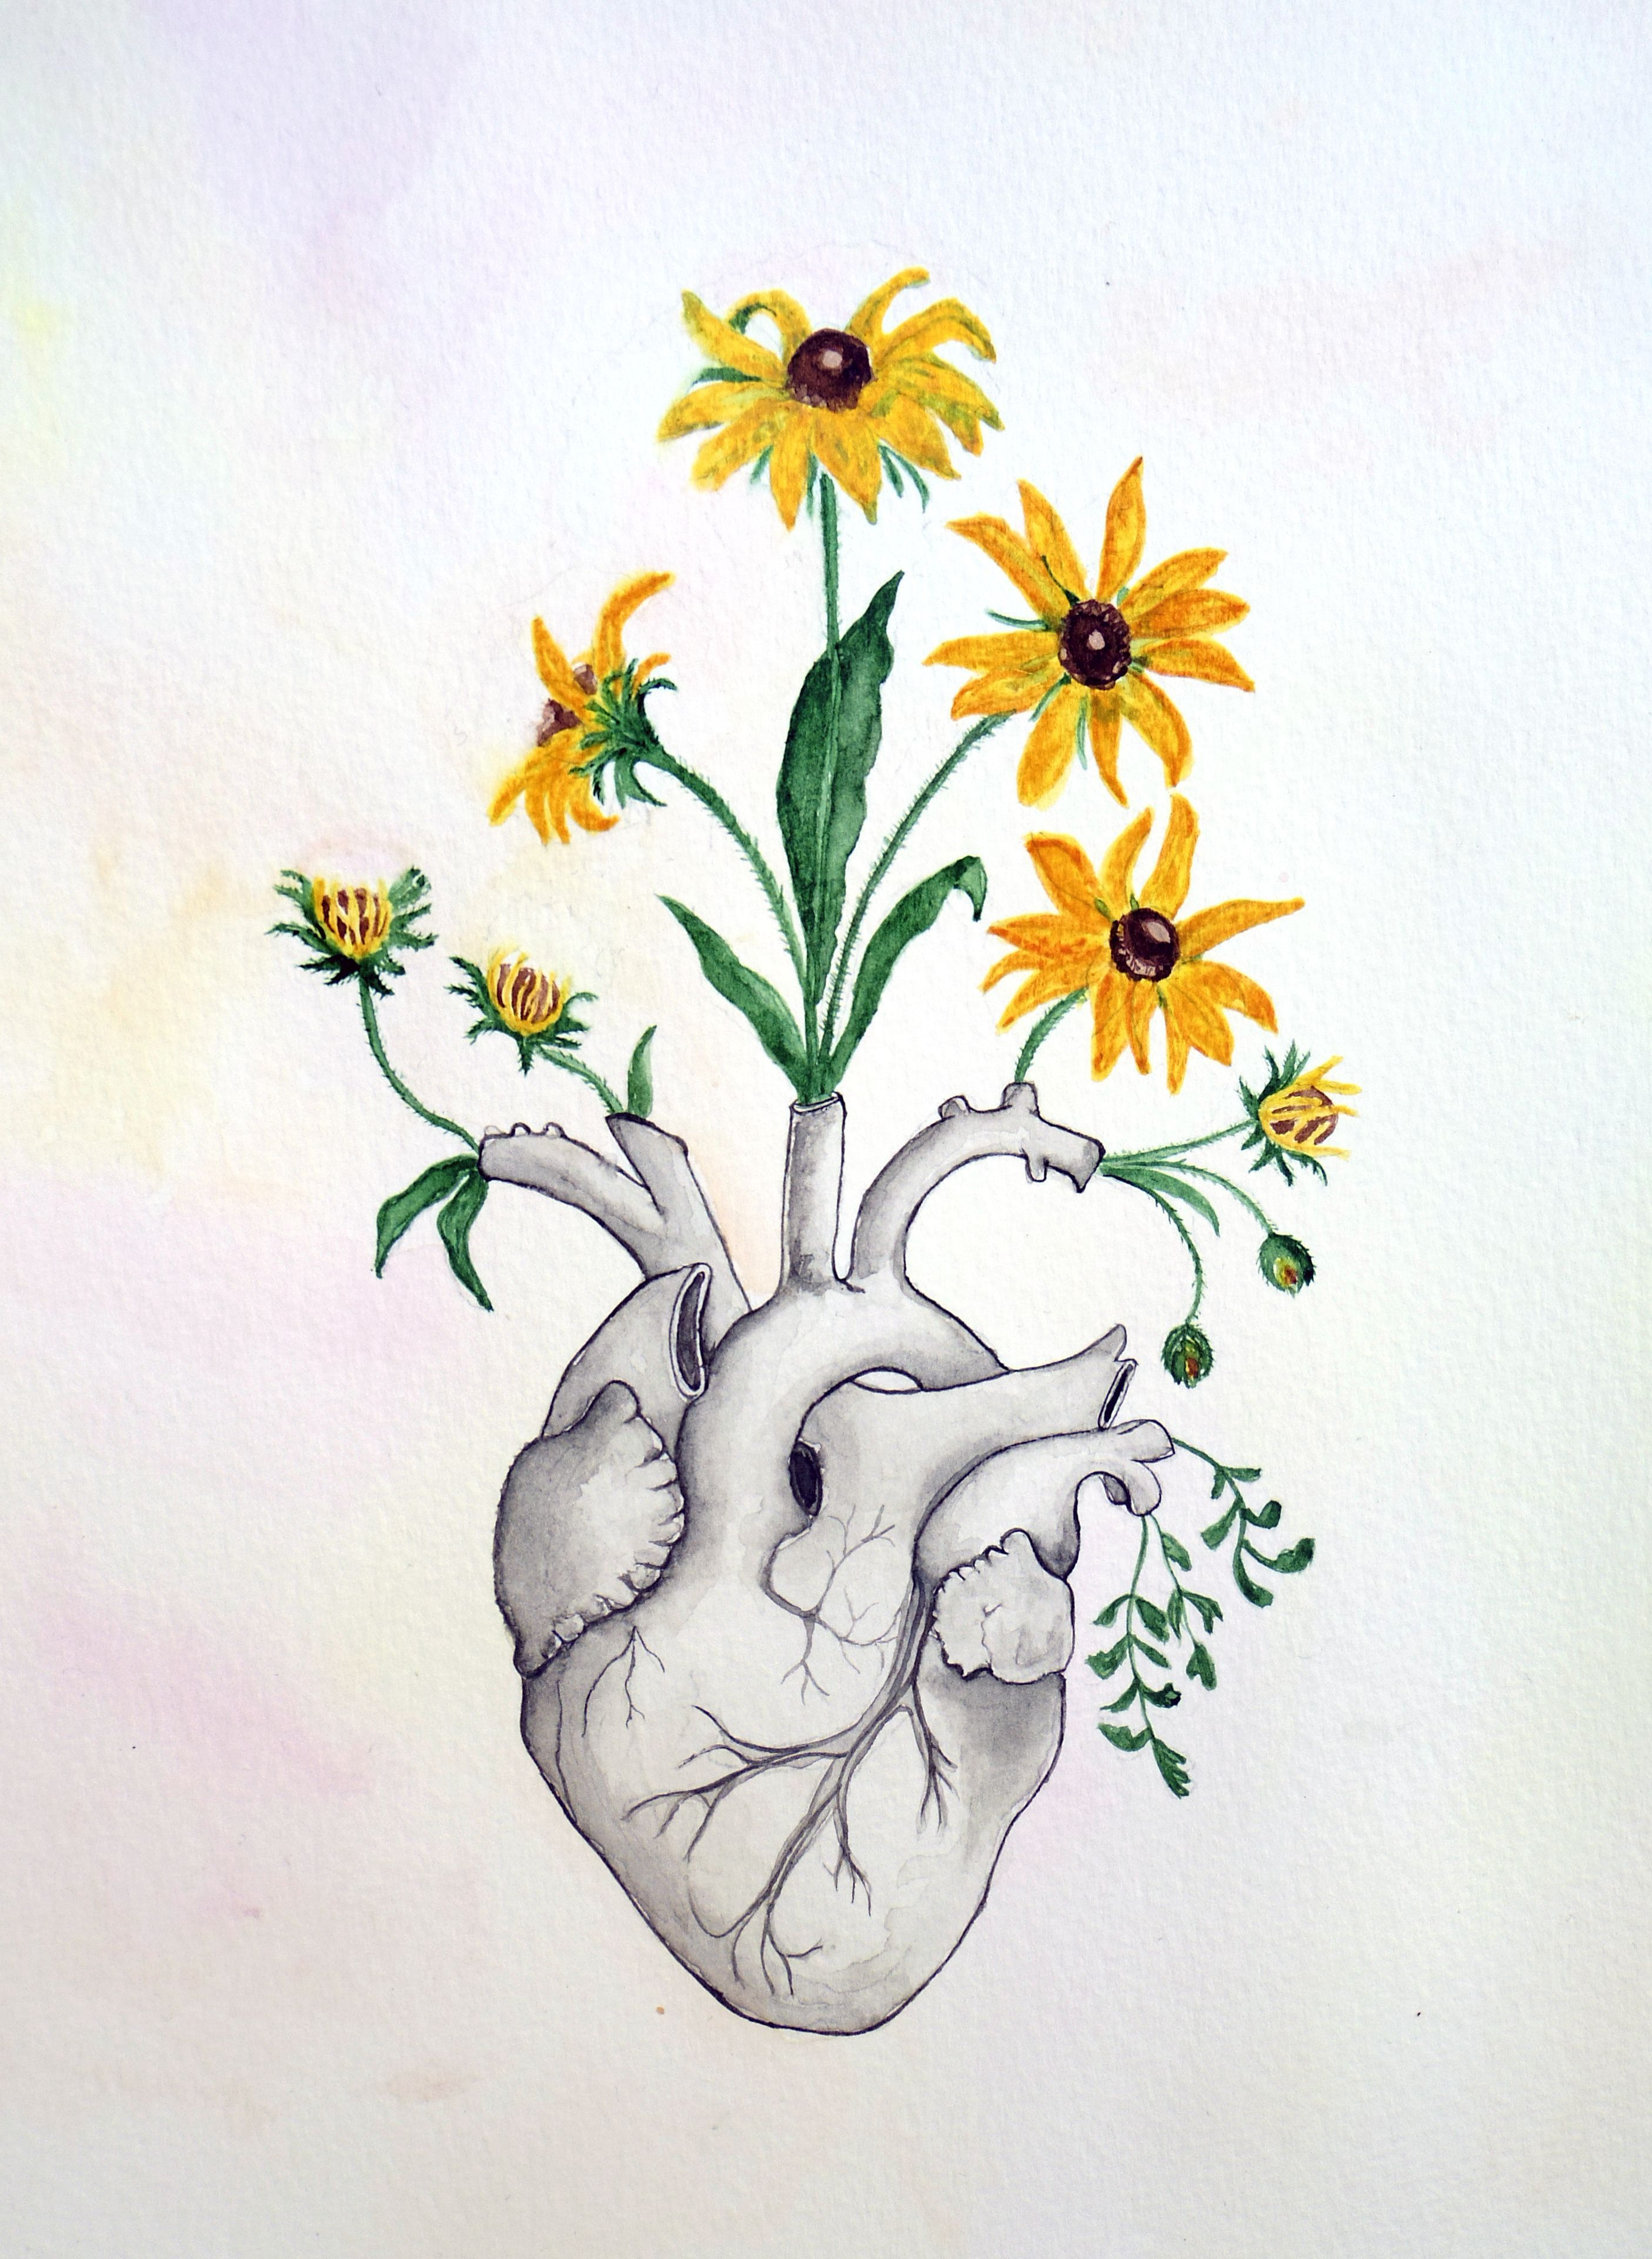 Floral Heart Anatomy Painting Unique Love Gift Watercolor Human